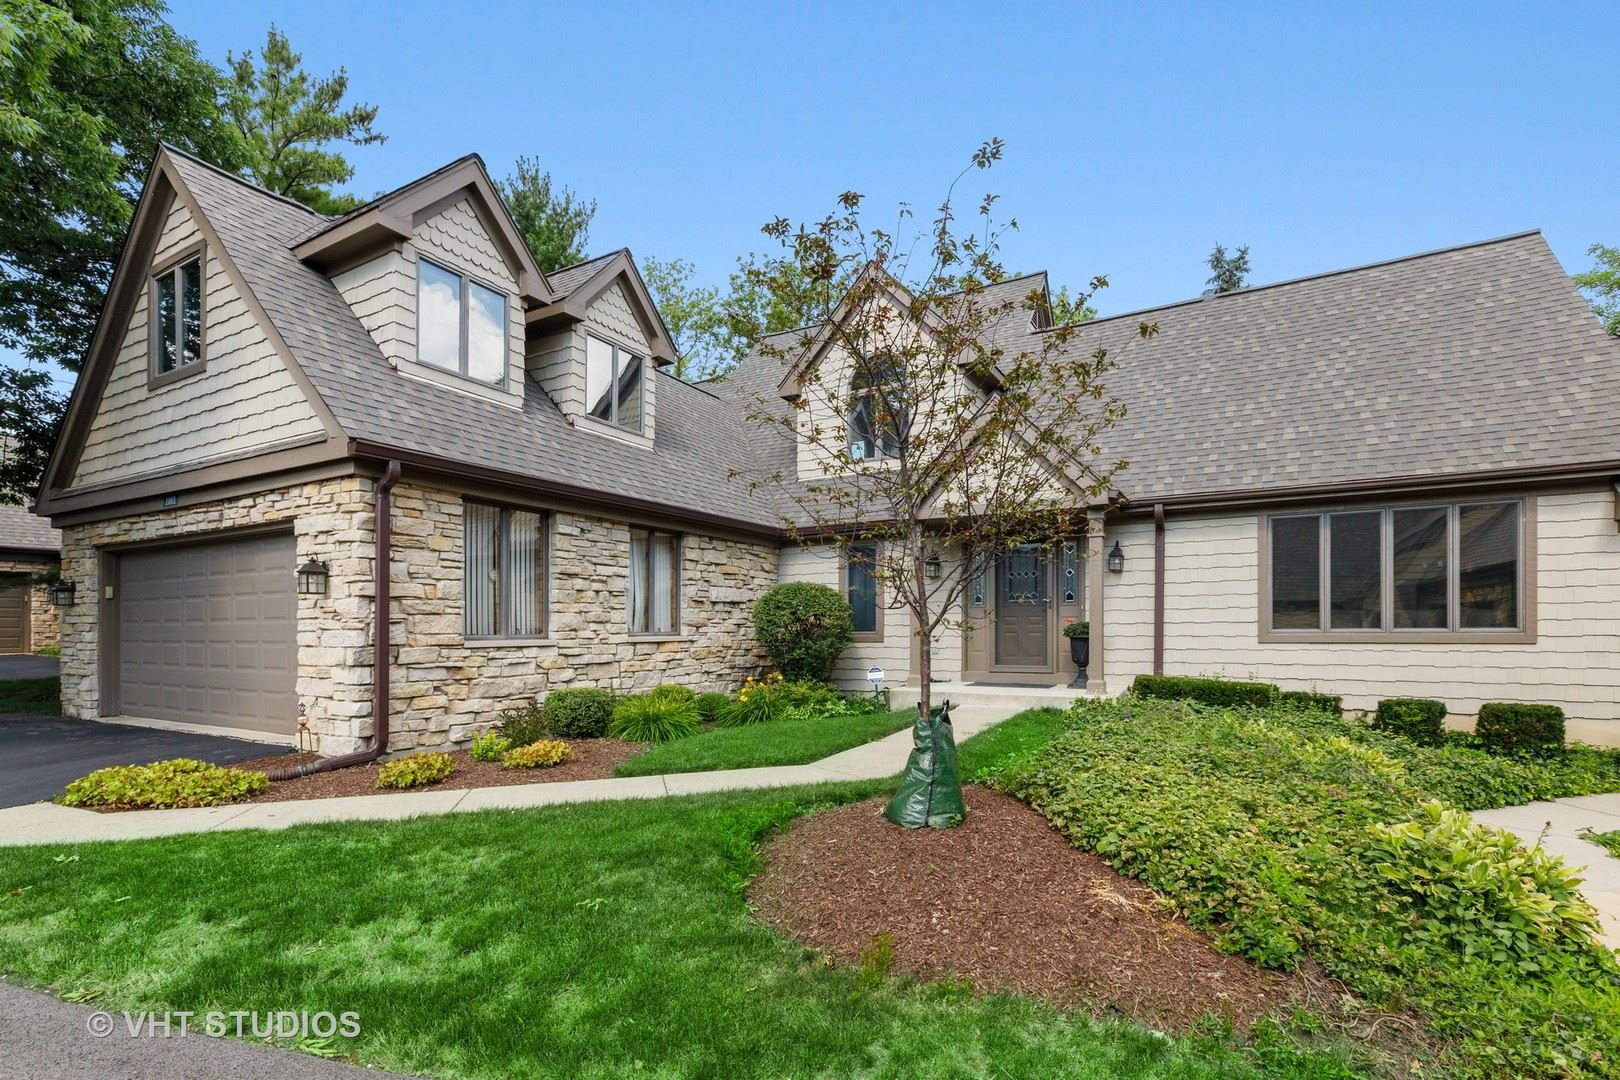 1001 TROUTLILLY Lane, Darien, IL 60561 - #: 10799992